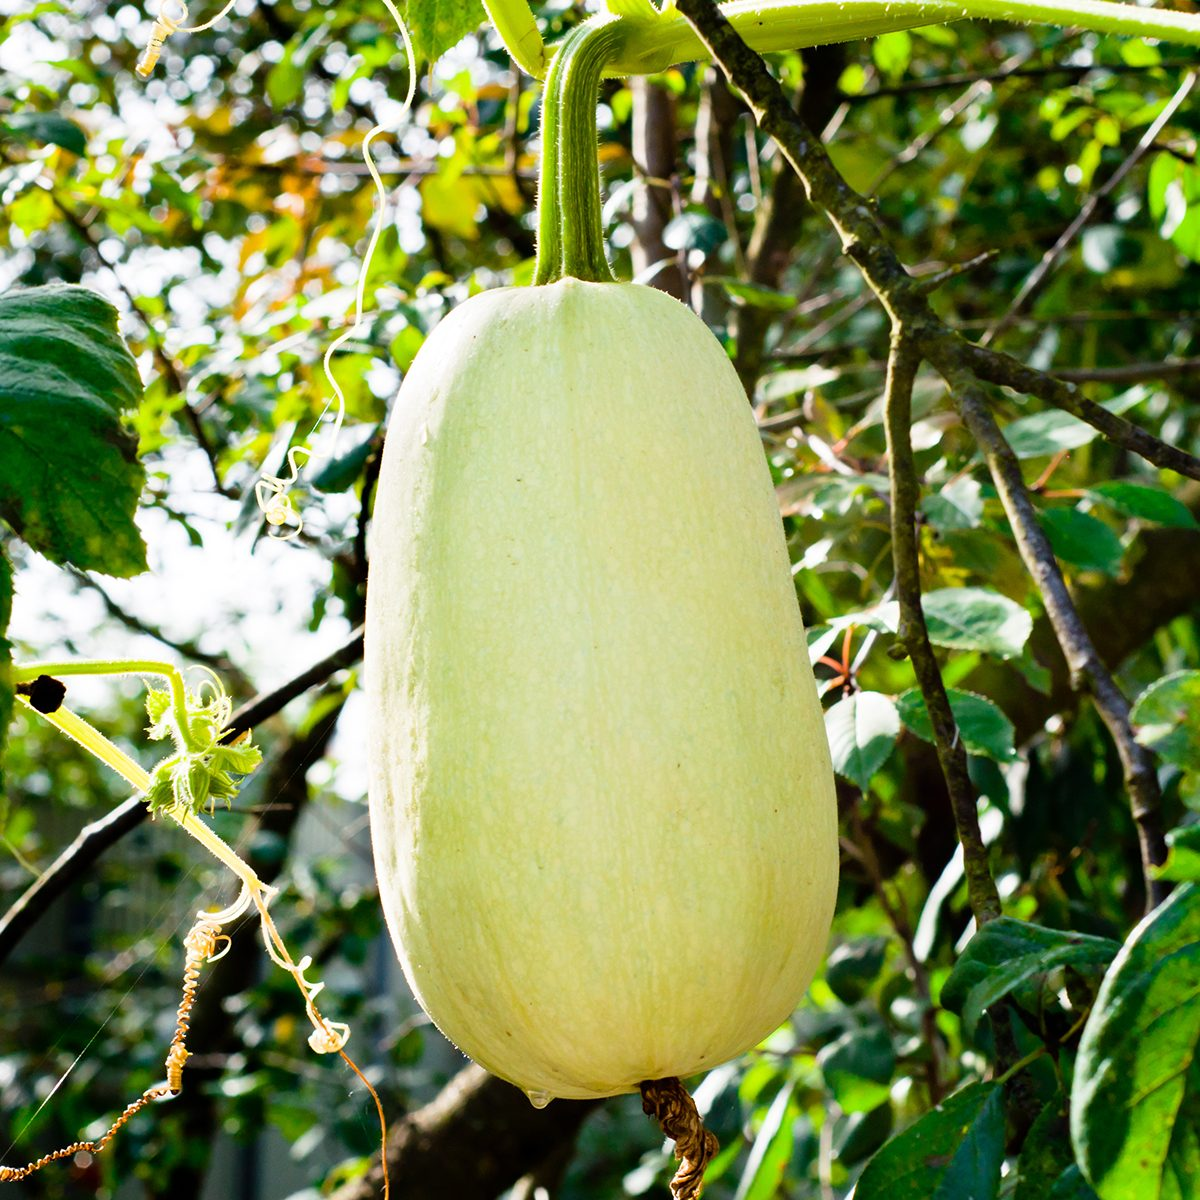 White zucchini in the garden, hanging in the air